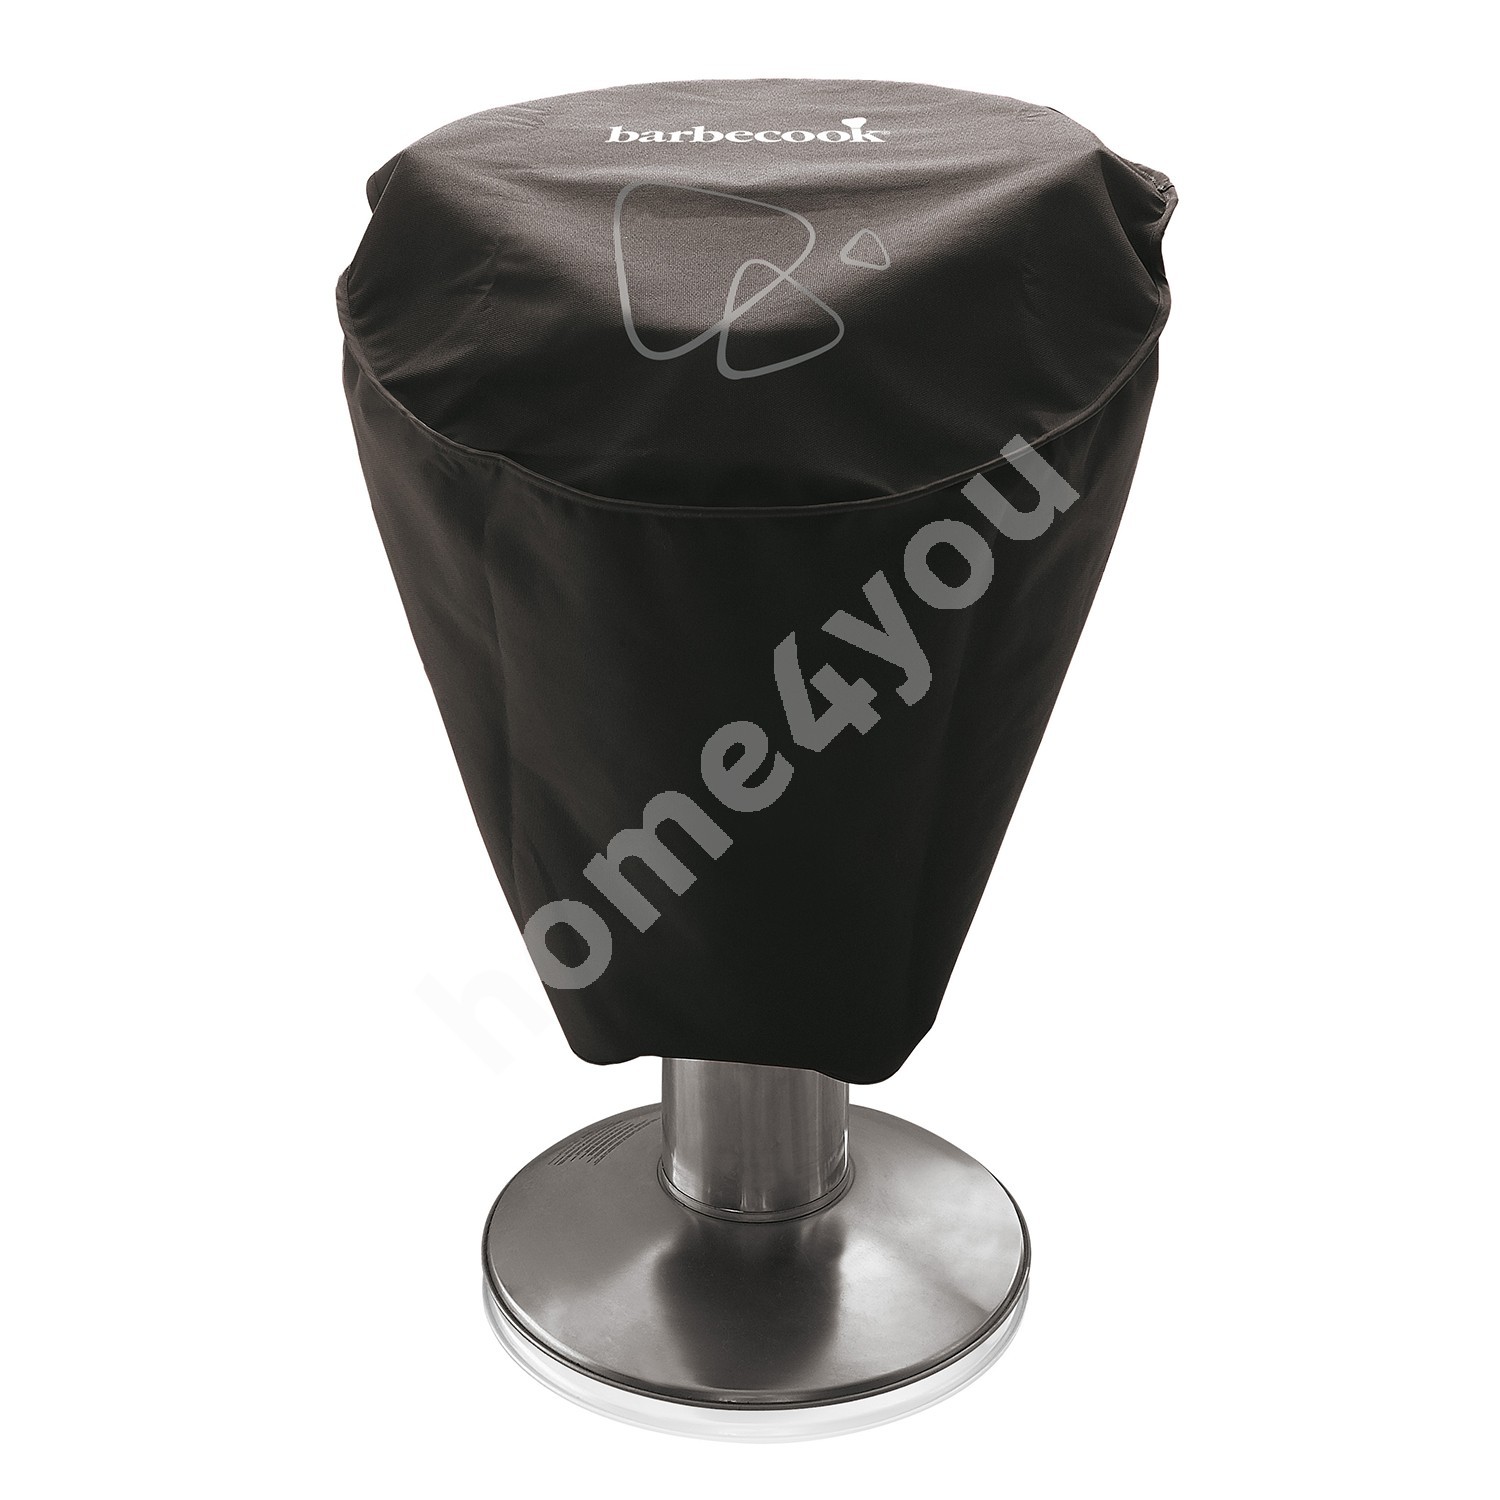 Cover for charcoal grill BARBECOOK D60cm